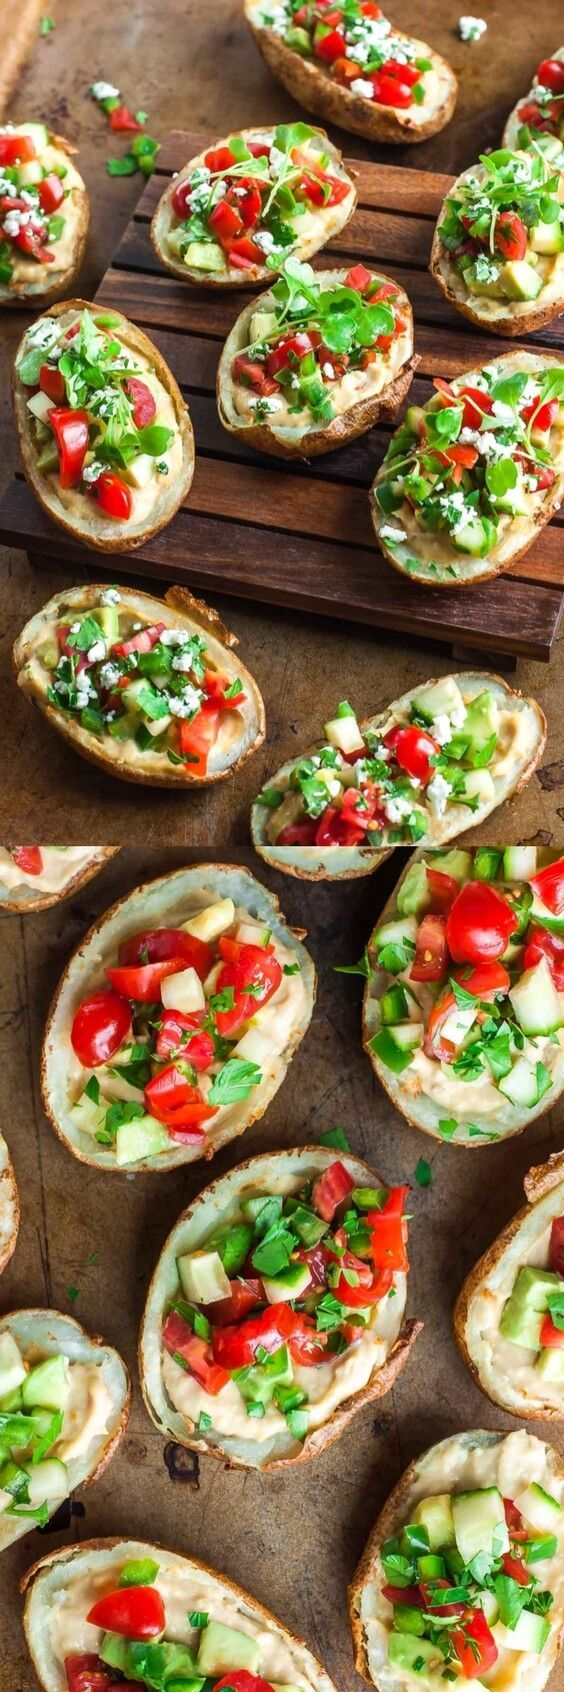 These Healthy Mediterranean Potato Skins with Roasted Garlic Hummus prove that tasty appetizers can be good for you too!